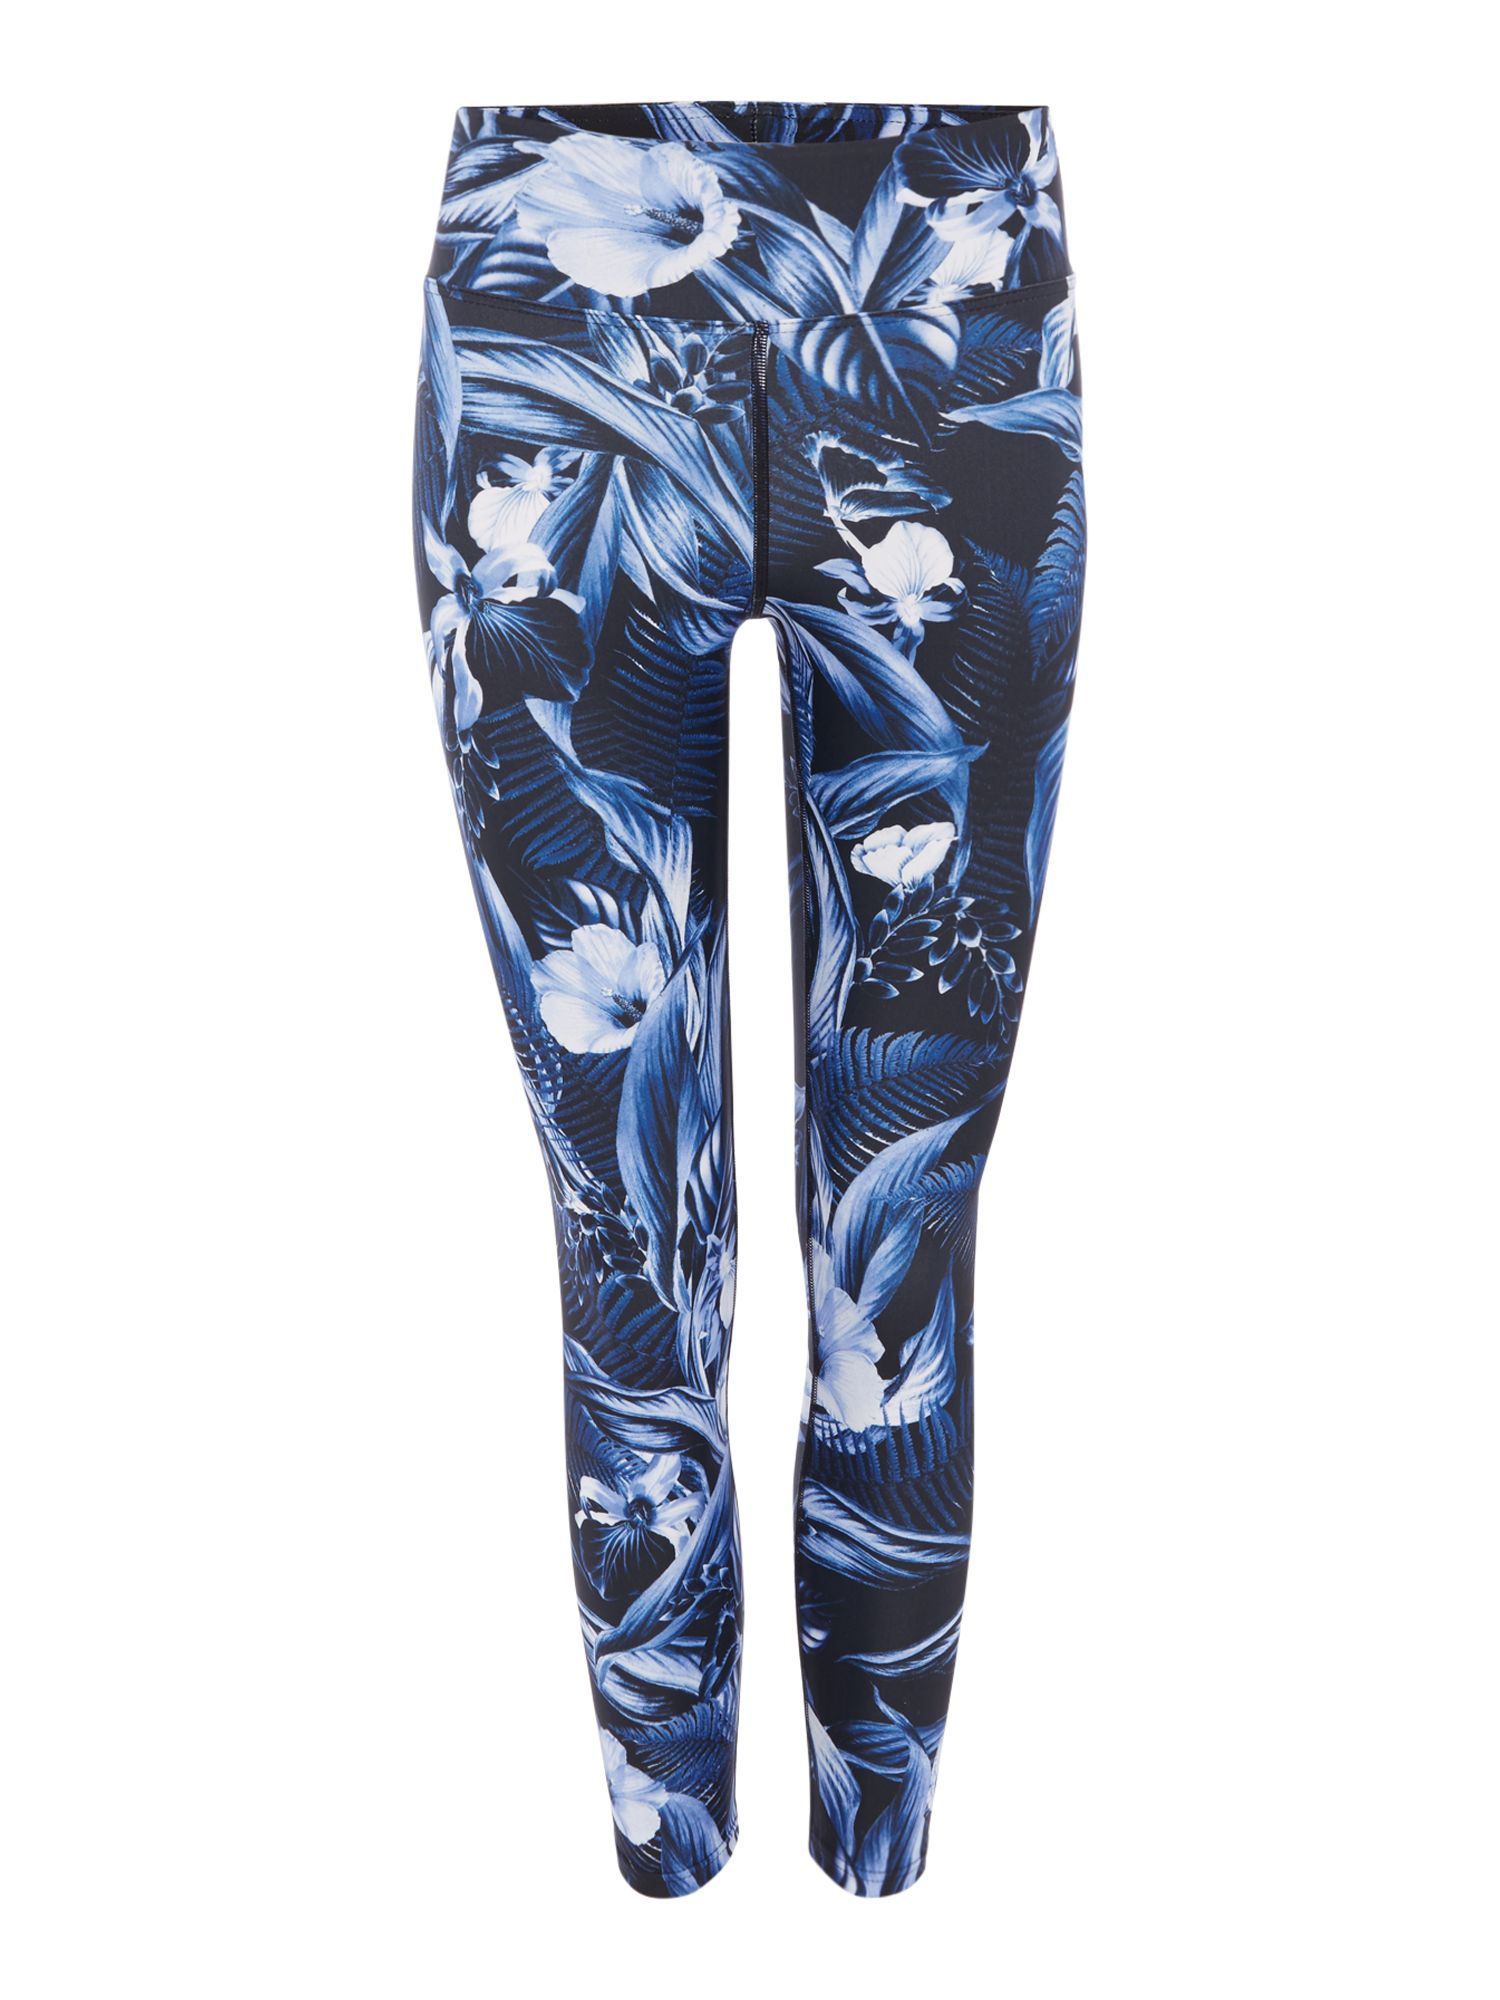 Dharma Bums Misty forest 78 legging, Blue